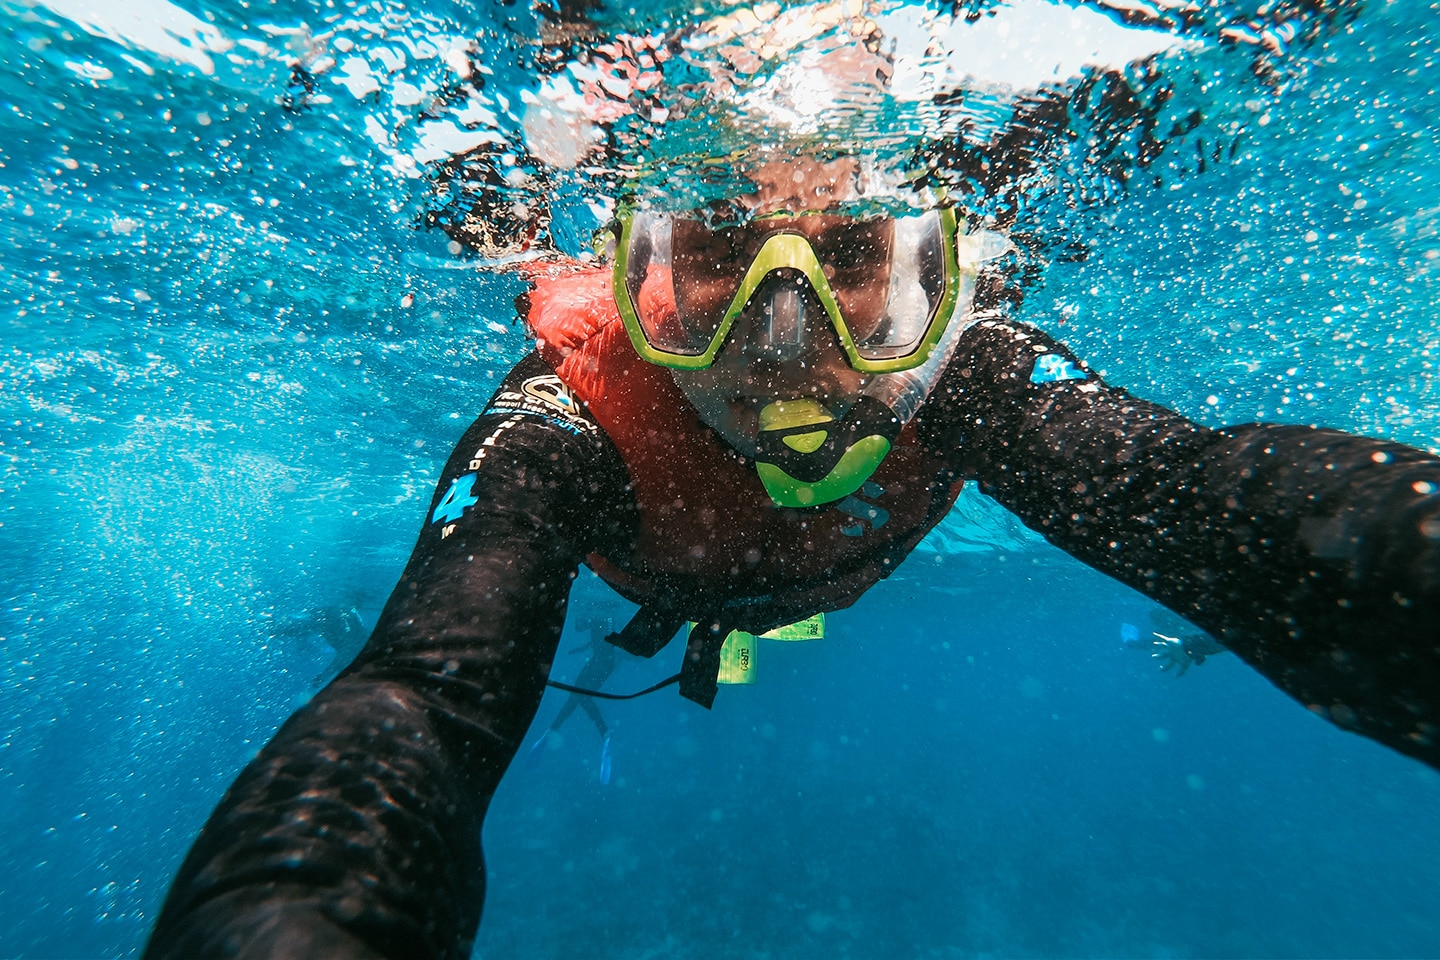 Snorkeler in rash guard